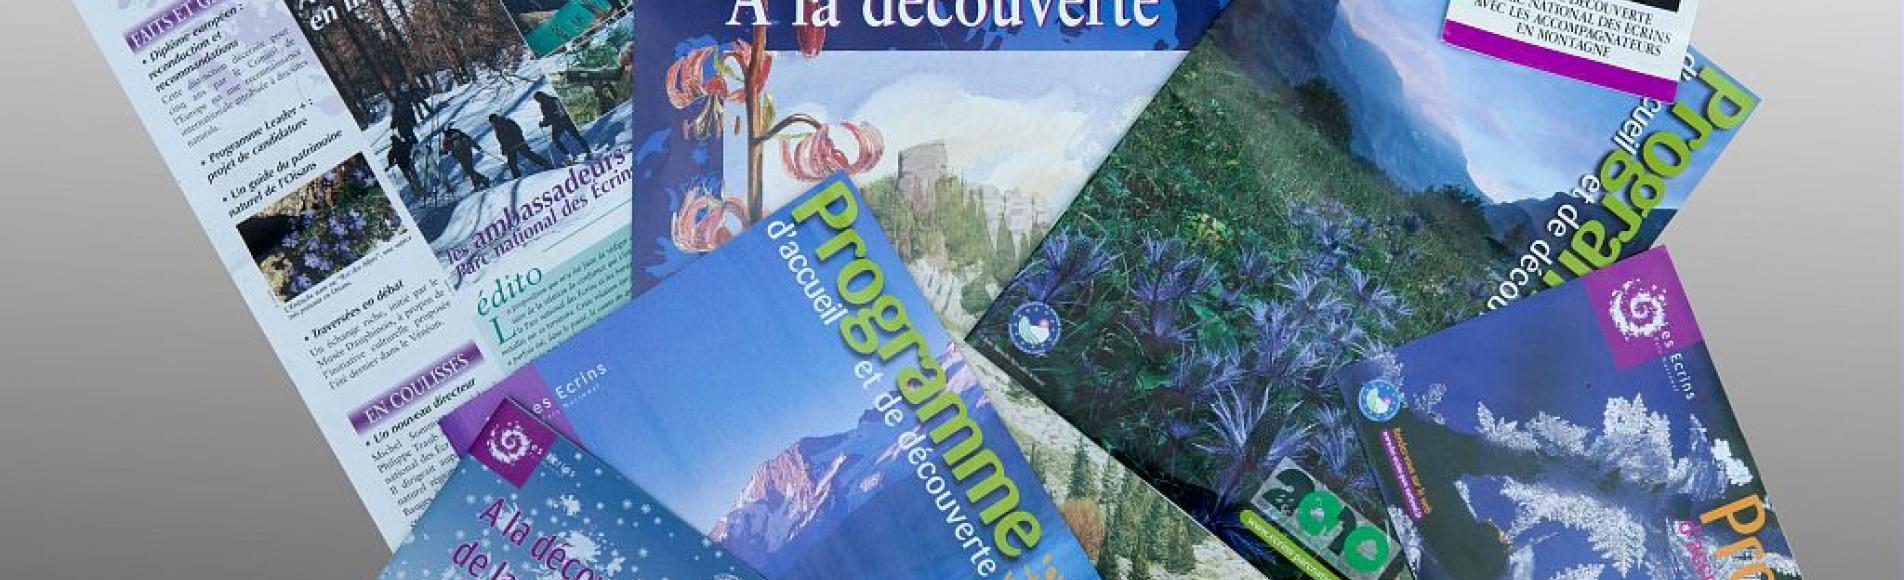 Publications du Parc national des Ecrins ©Saulay Pascal - Parc national des Ecrins